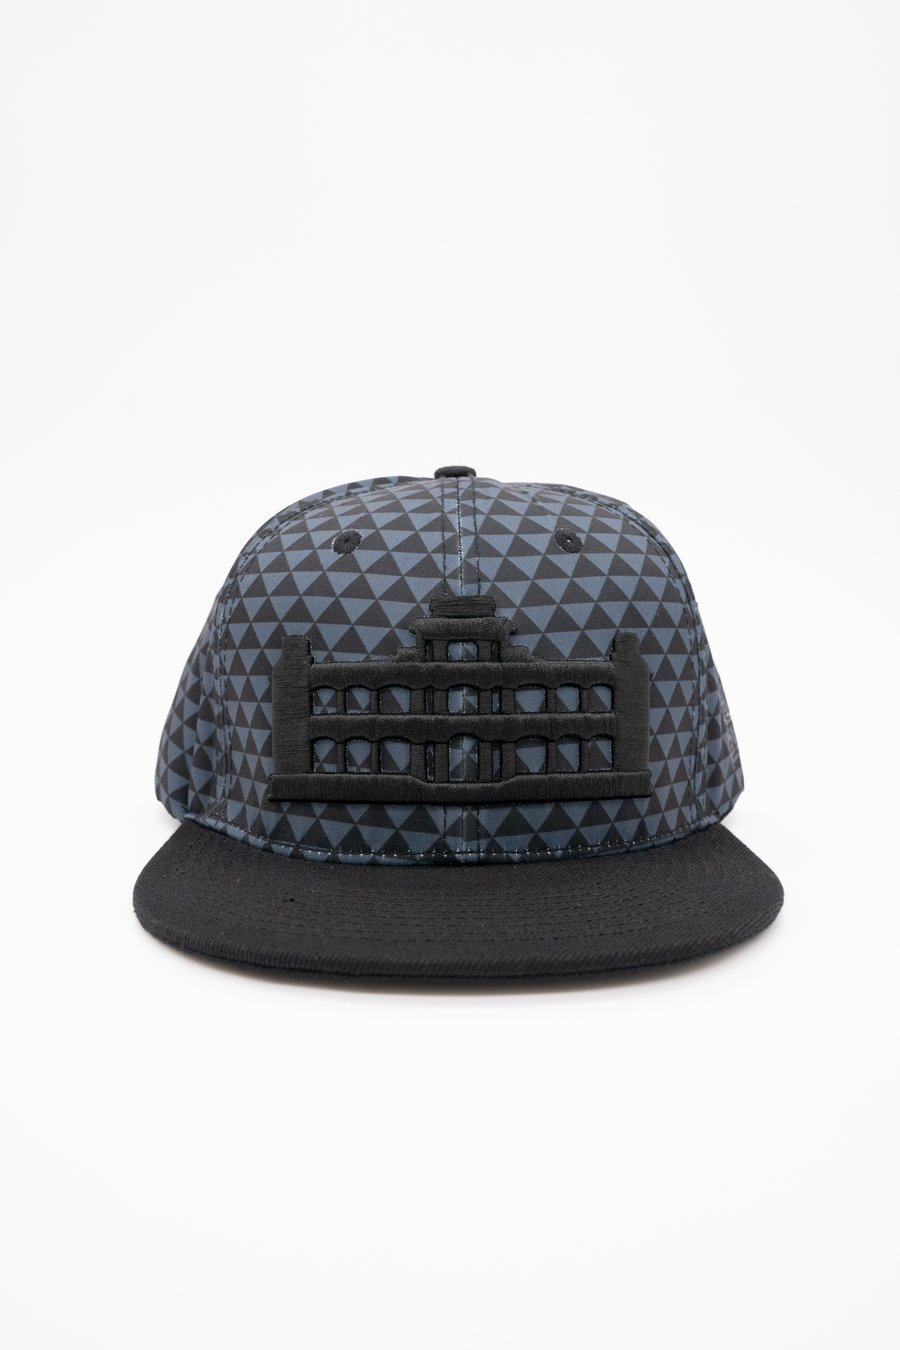 Gray Triangle & Black Palace Hat